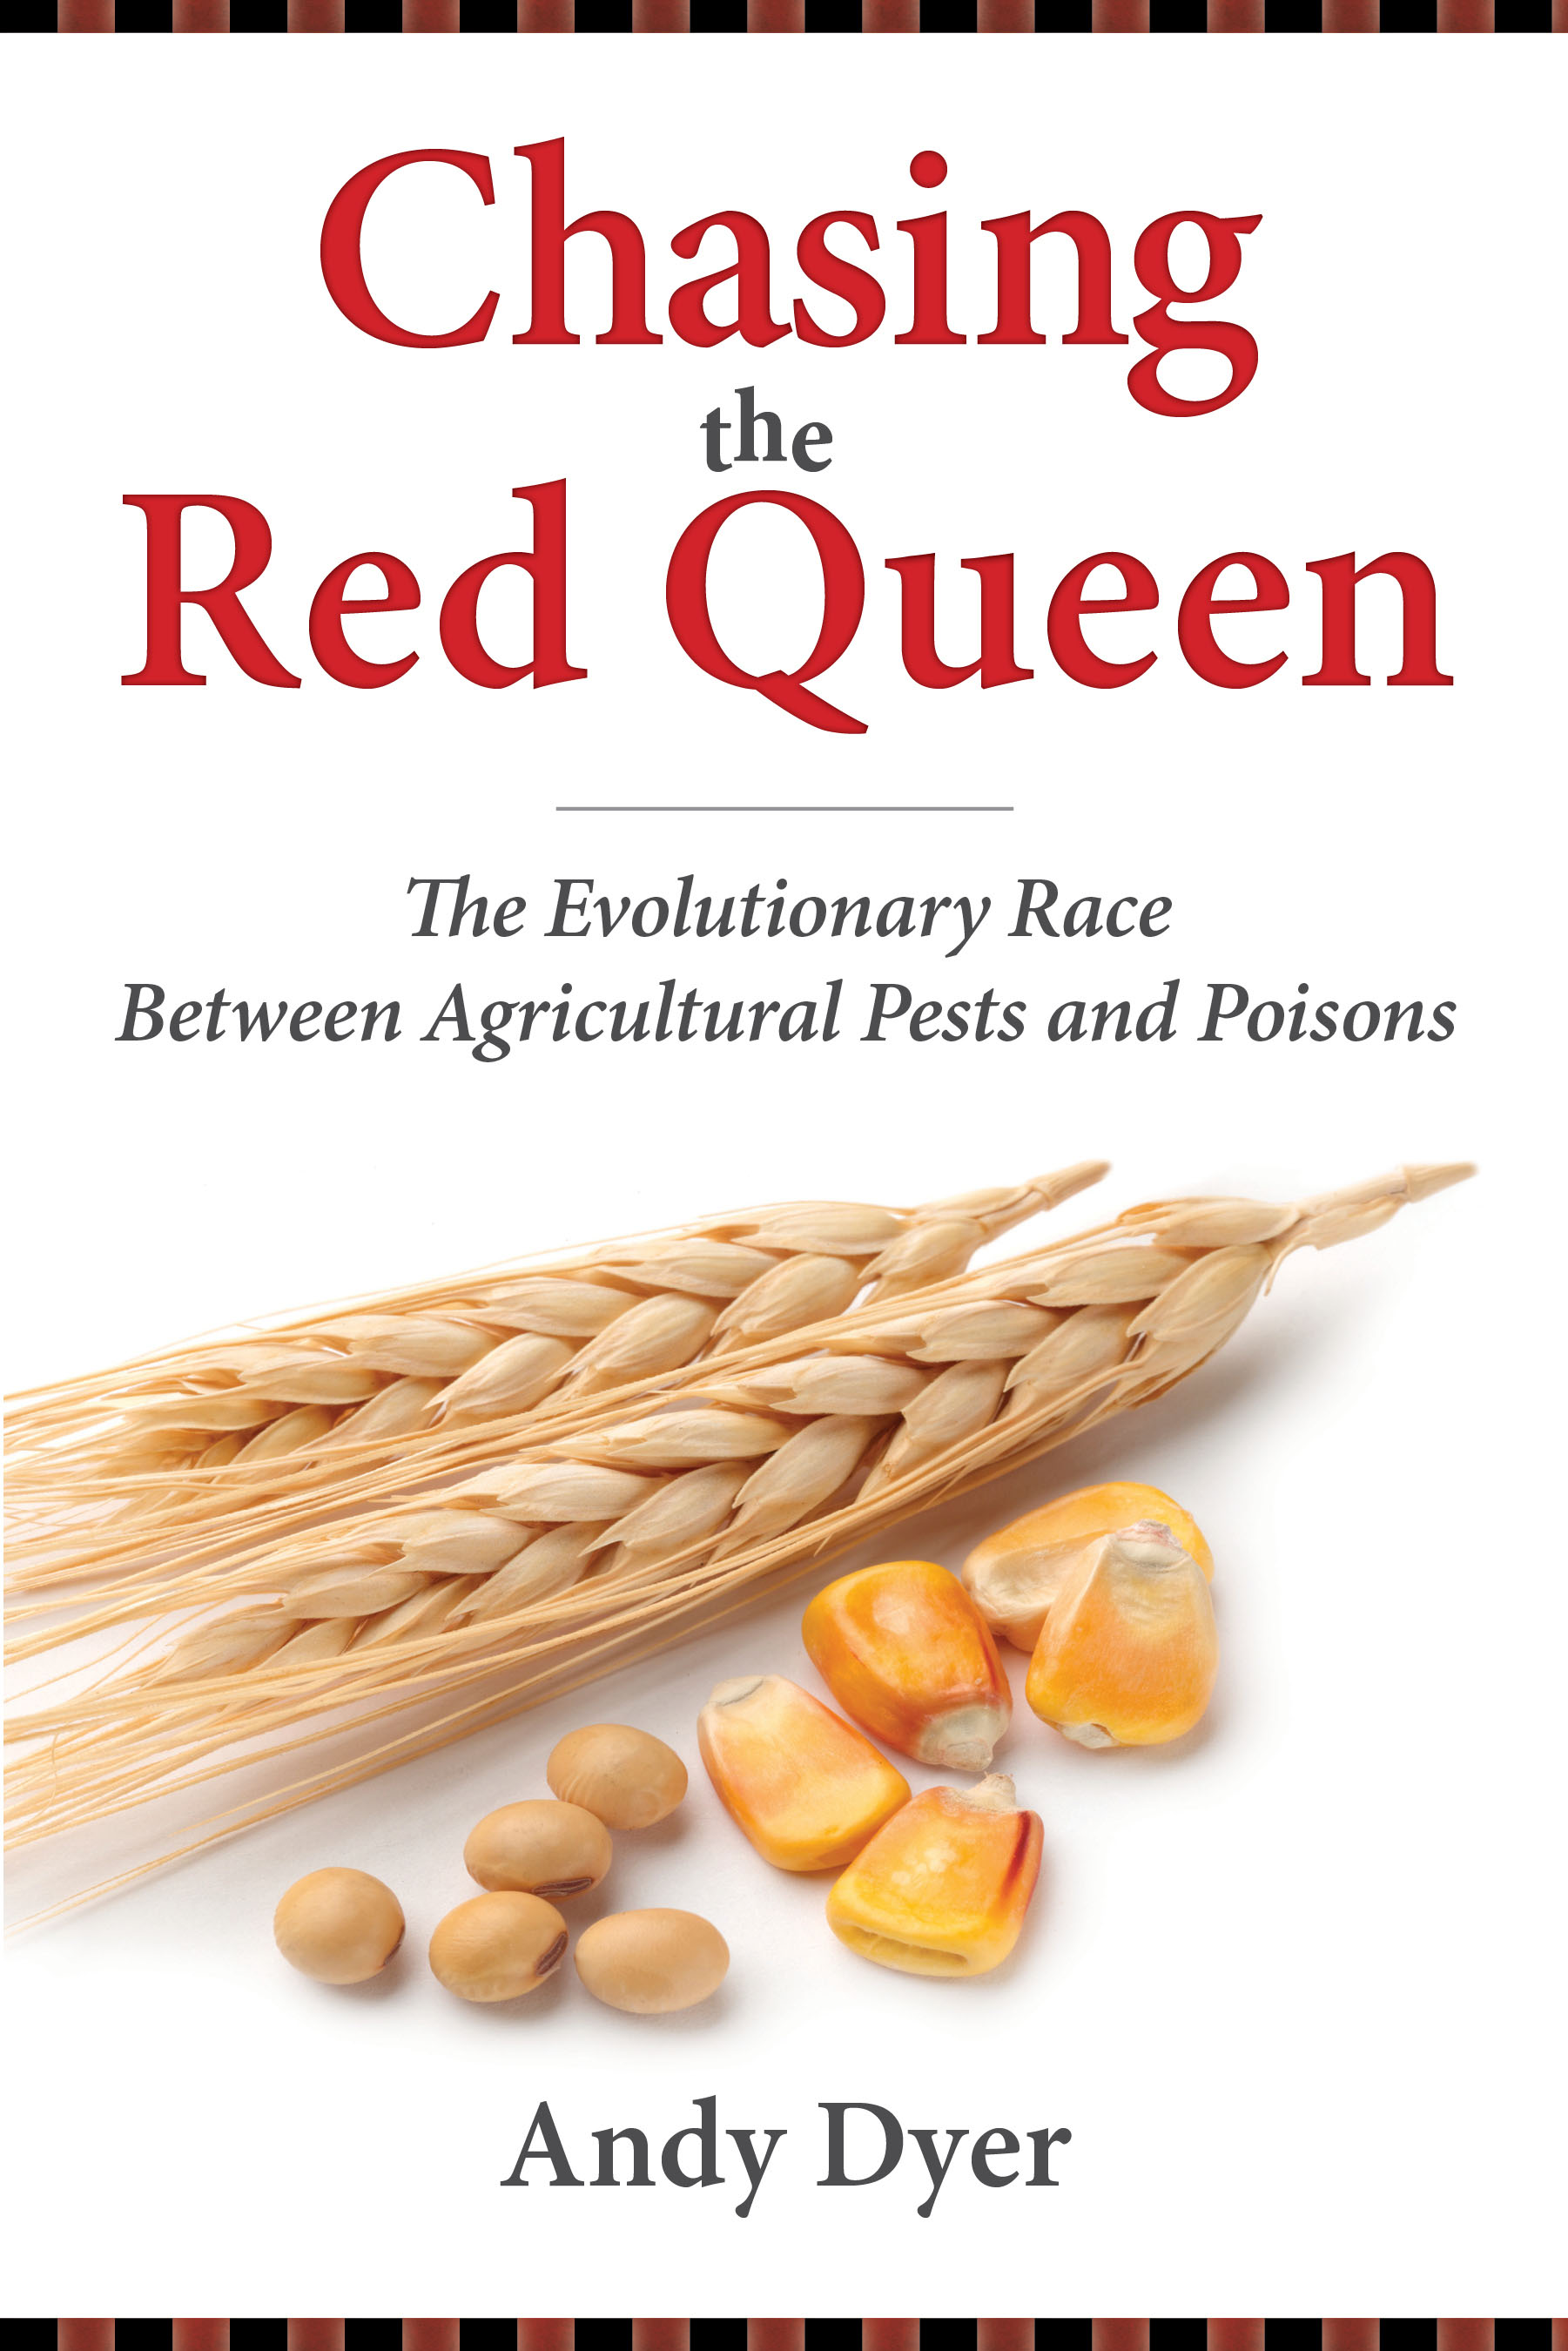 queen hypthesis The red queen hypothesis predicts that no species progresses too far ahead in theevolutionary arms race against its competitors, in sexual reproduction, the generational re- sorting/re-packaging of allelic variation provides the raw material that natural selection acts upon.